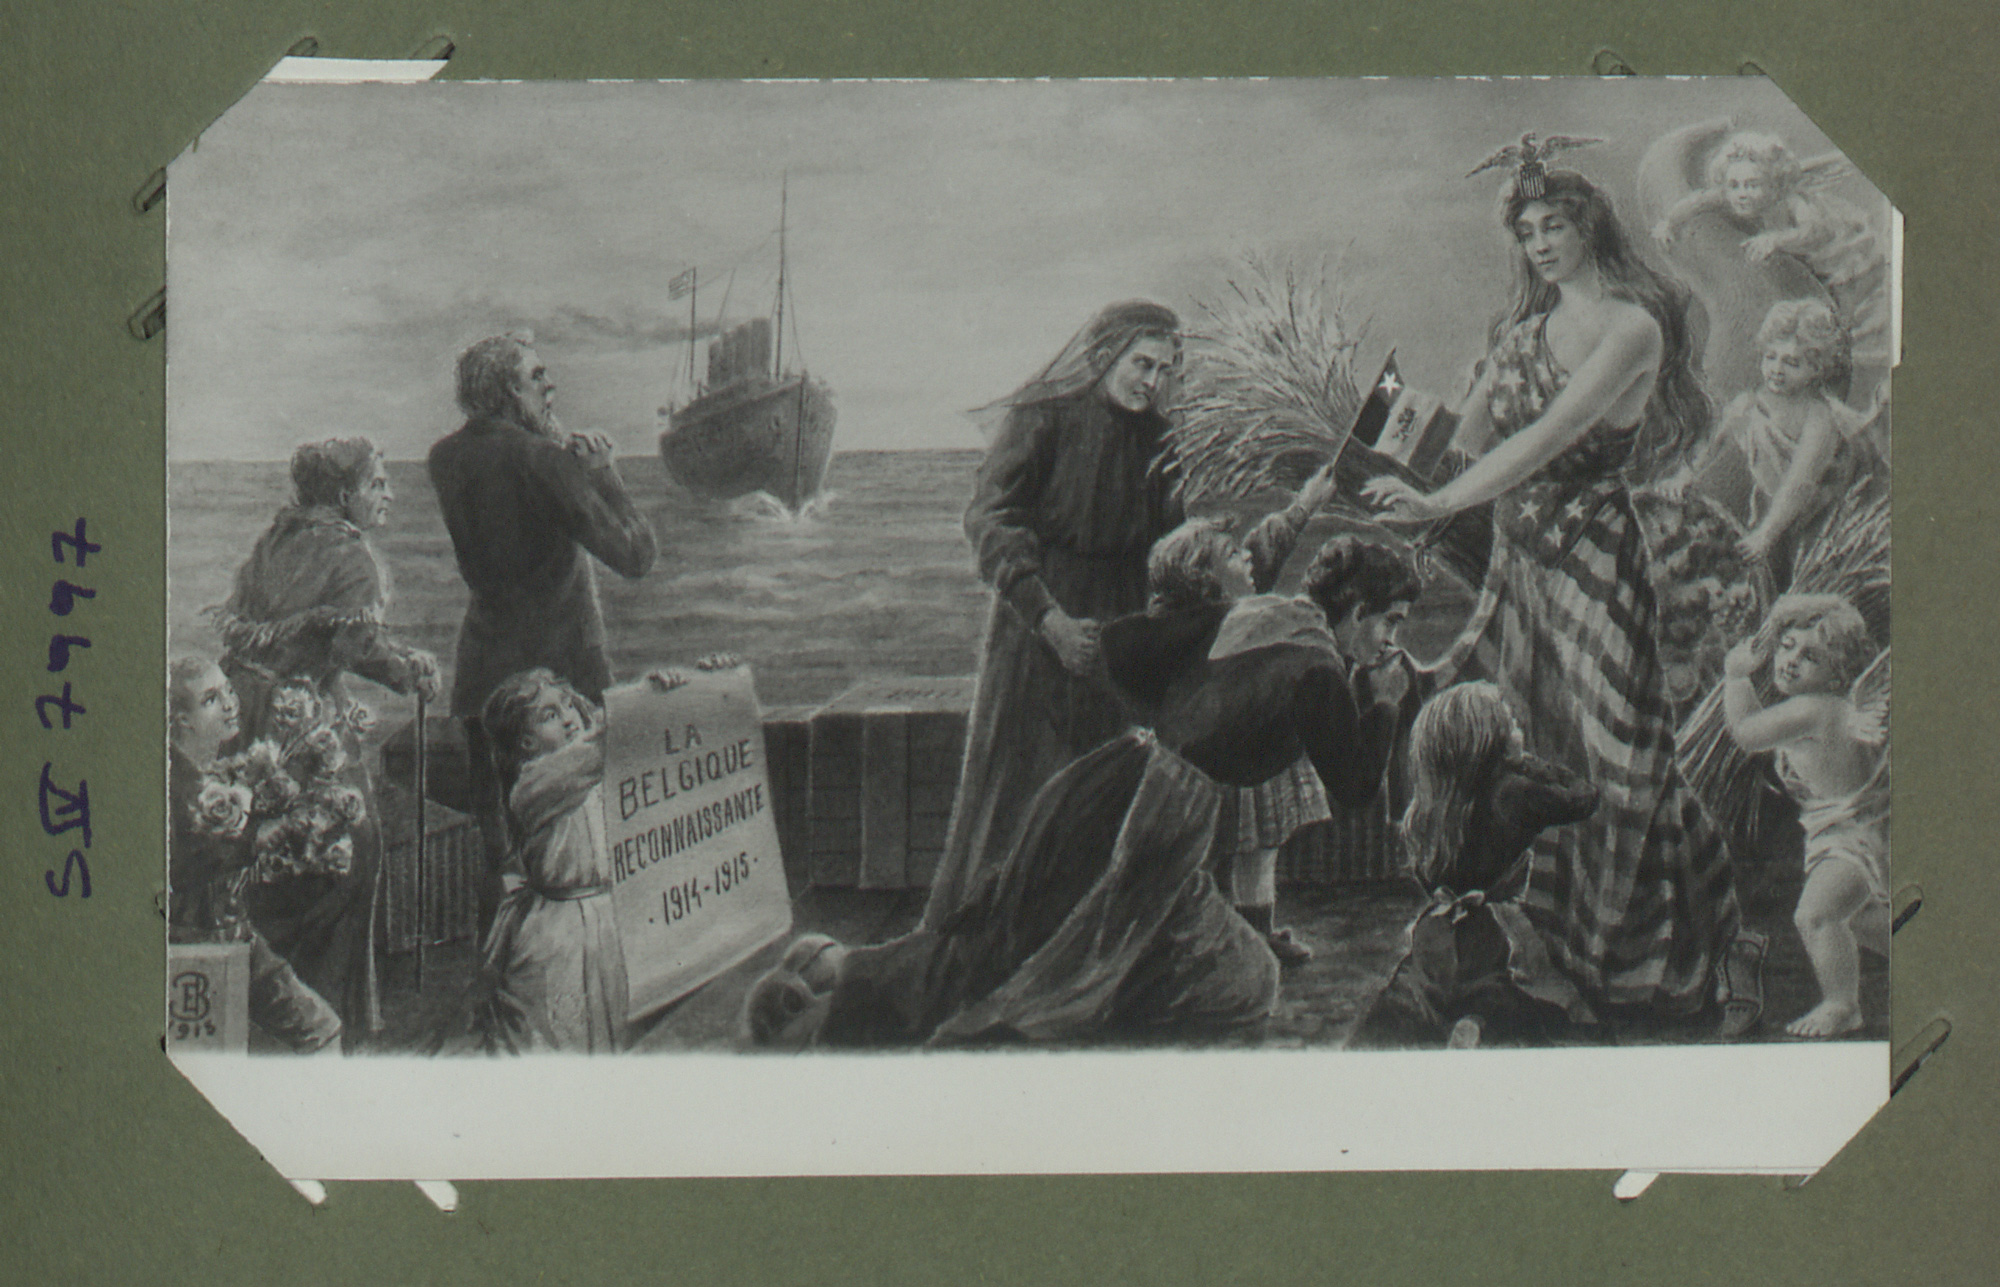 Postcard celebrating Belgian gratitude for American support, and seeing the US as a land of plenty for Belgian refugees.